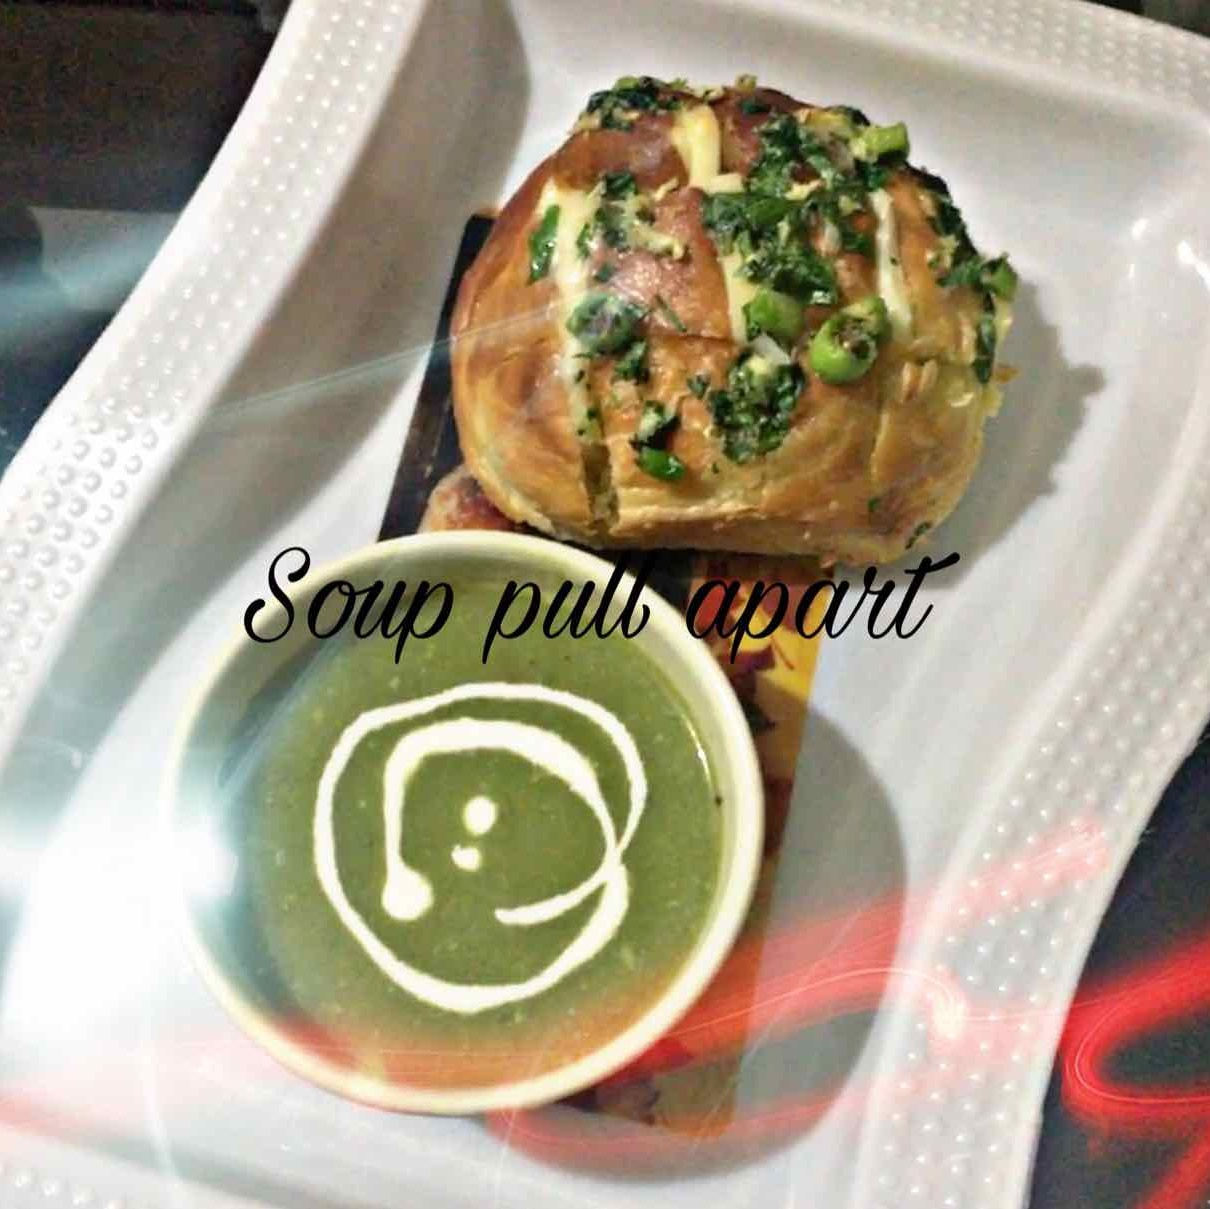 Photo of Soup pull apart by Shakuntla Parmar at BetterButter